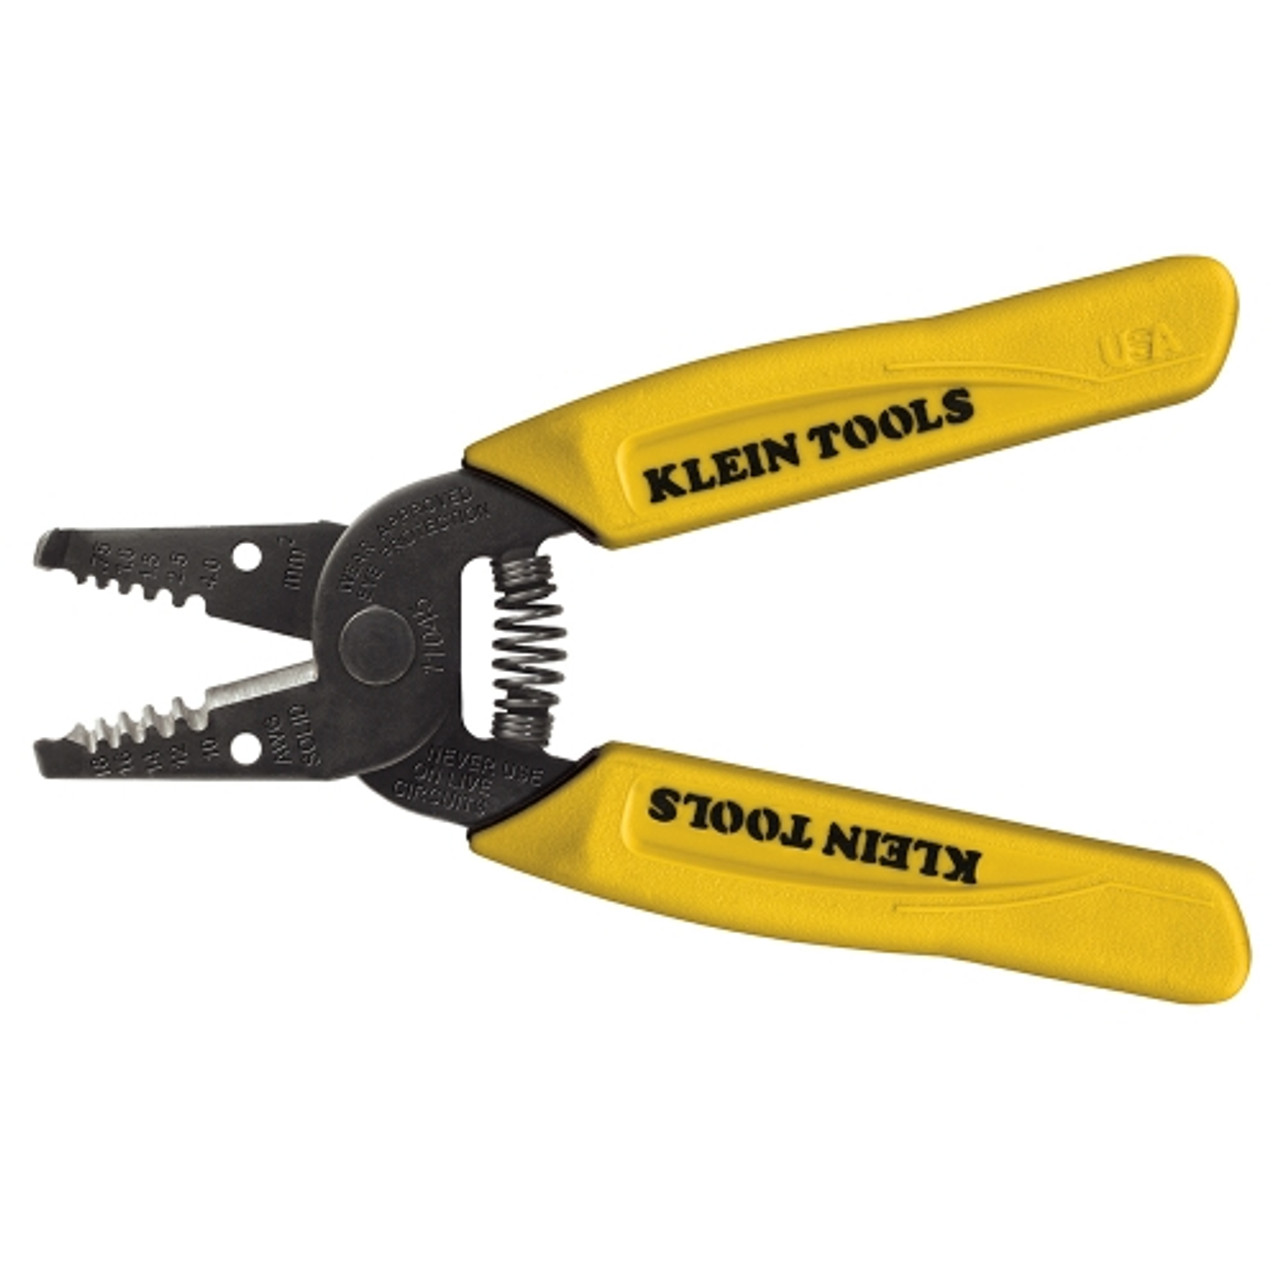 Klein 11045 10-18  Wire Stripper/Cutter